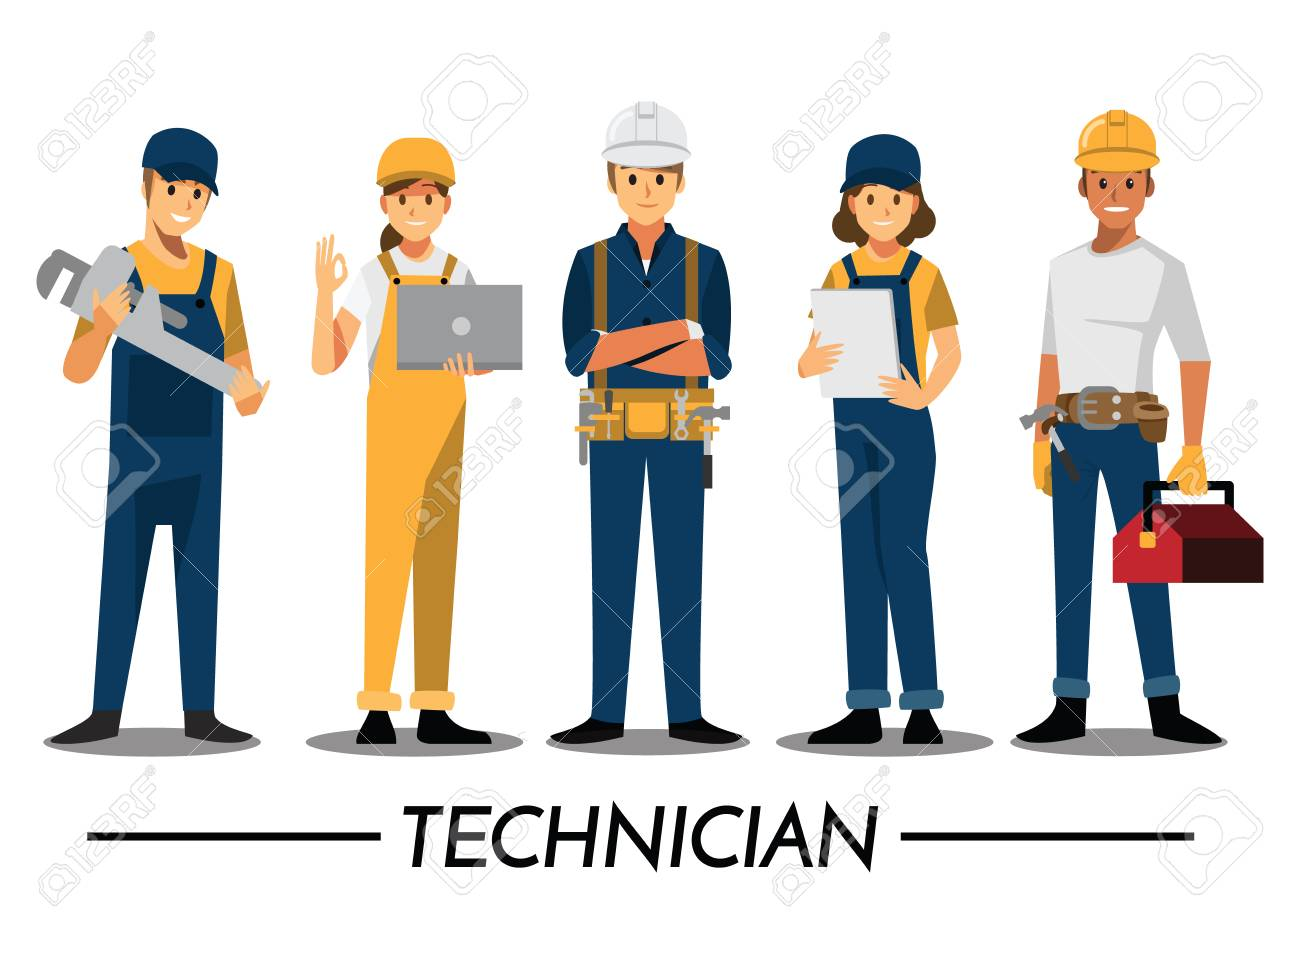 Technician and builders and engineers and mechanics People teamwork ,Vector illustration cartoon character. - 90002786